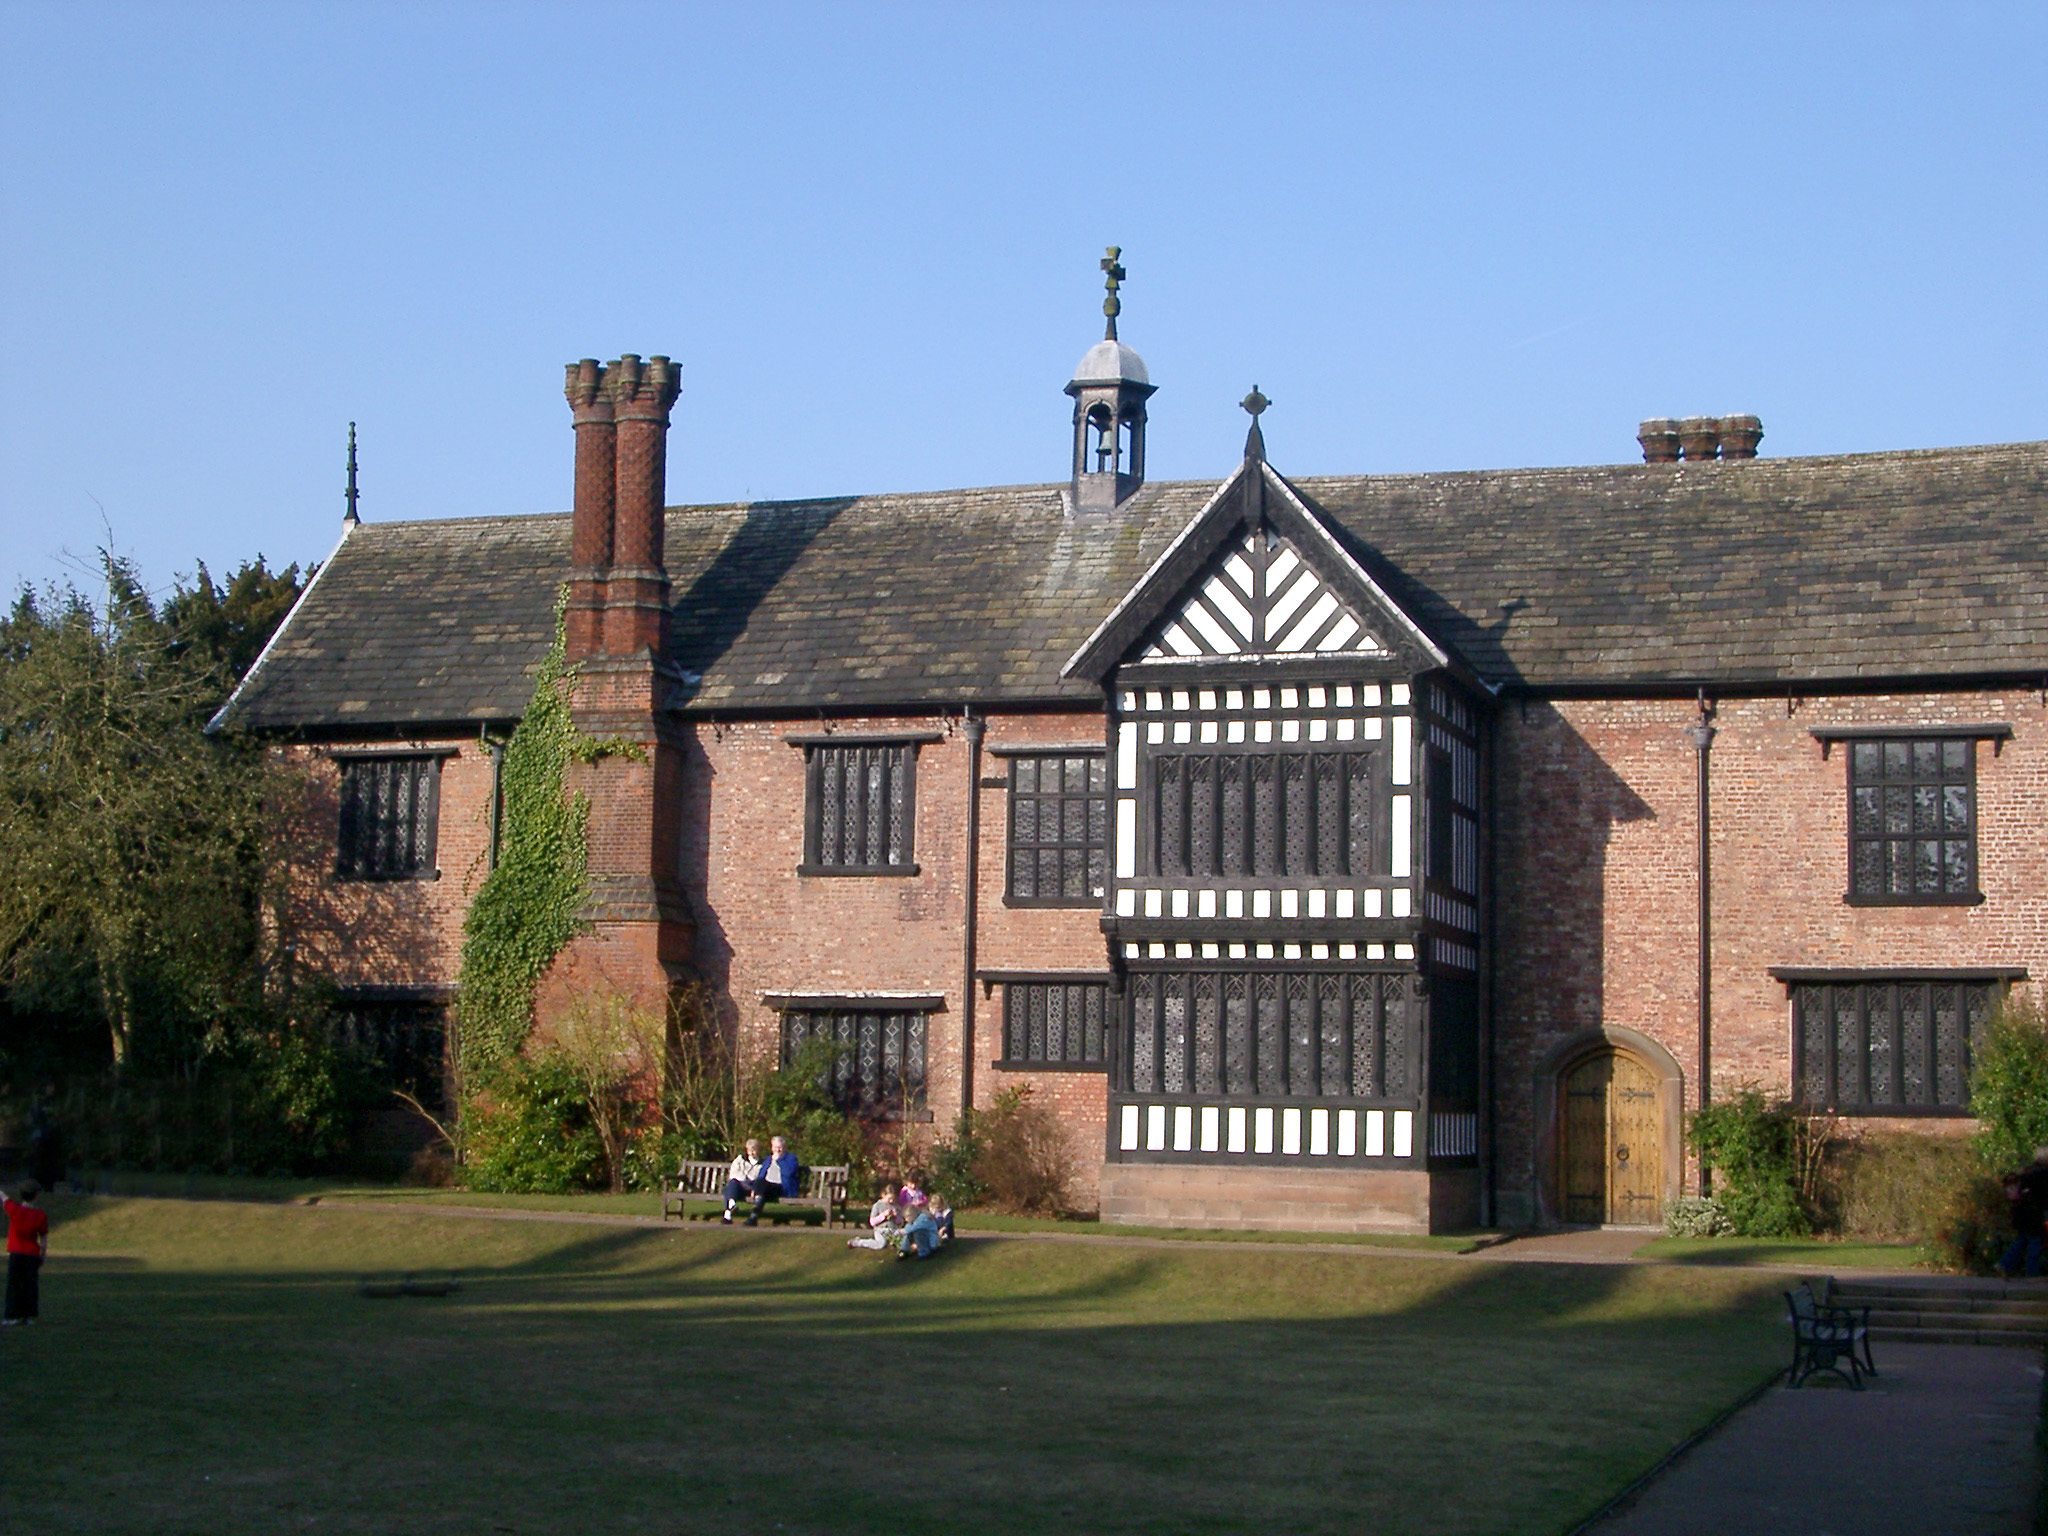 Spacious Lawn Area in front Famous Architectural Bramall Hall in Manchester, England.